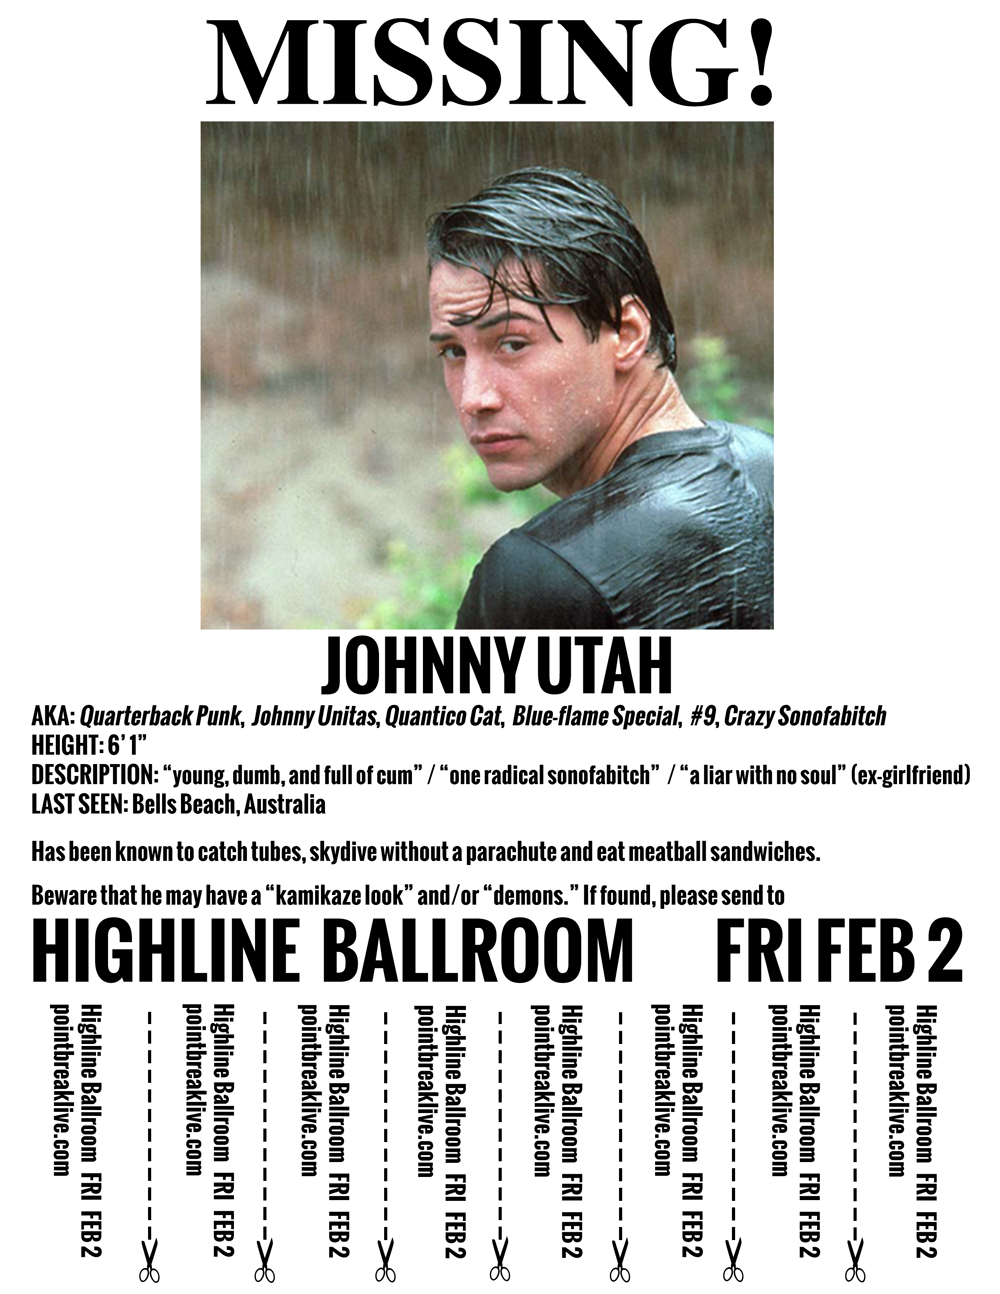 02_02_17_Highline_missing-johnny-utah.png